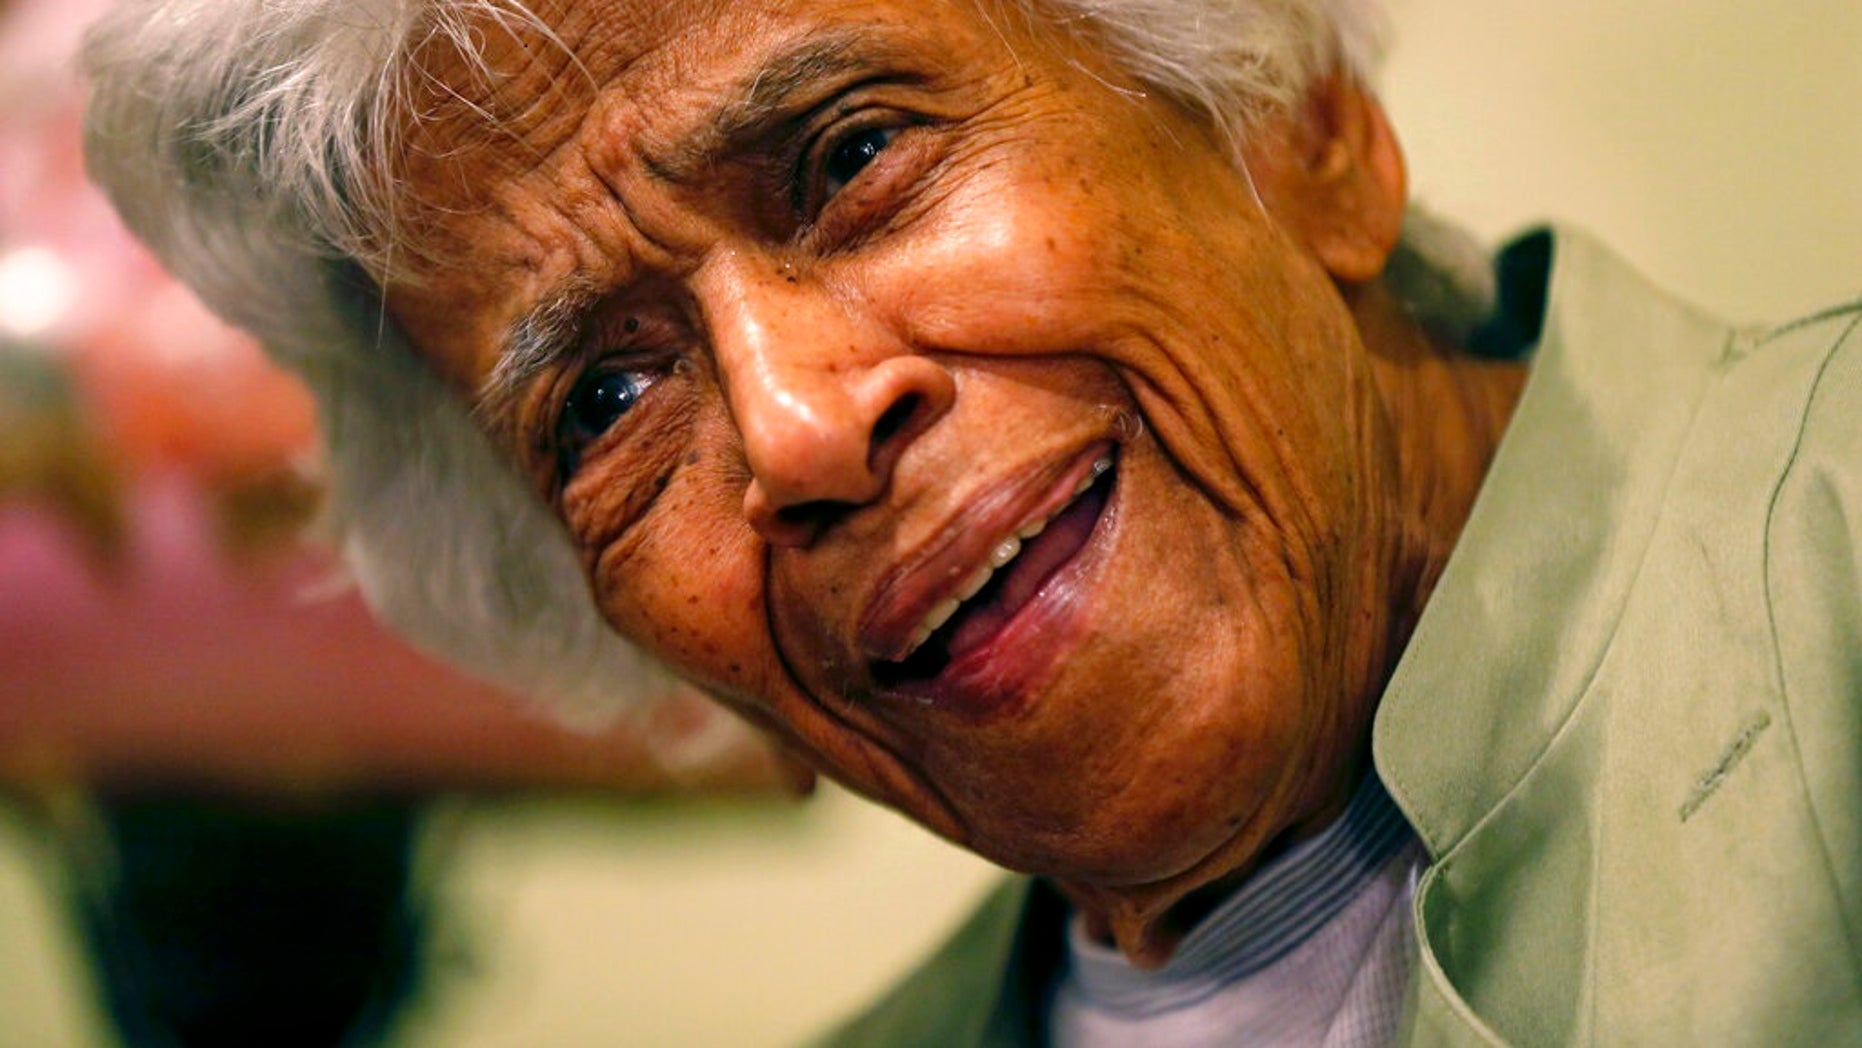 Leah Chase speaks at her family's restaurant, Dooky Chase's Restaurant, in New Orleans in 2015. The legendary chef and civil rights icon has died at 96, according to a statement her family released to news outlets. (AP Photo/Gerald Herbert, File)